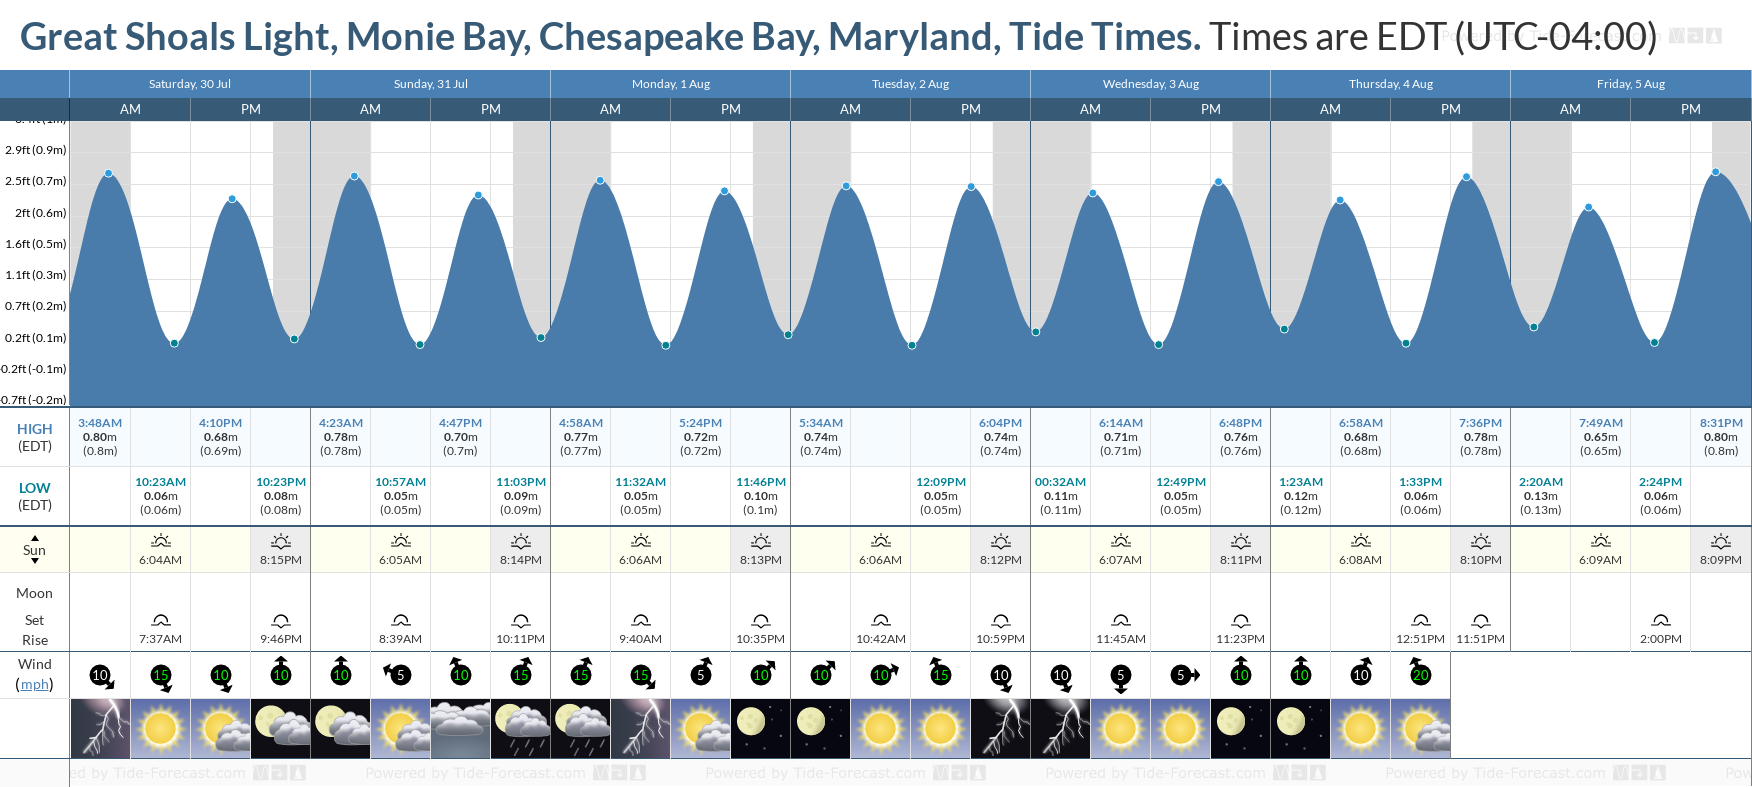 Great Shoals Light, Monie Bay, Chesapeake Bay, Maryland Tide Chart including high and low tide tide times for the next 7 days